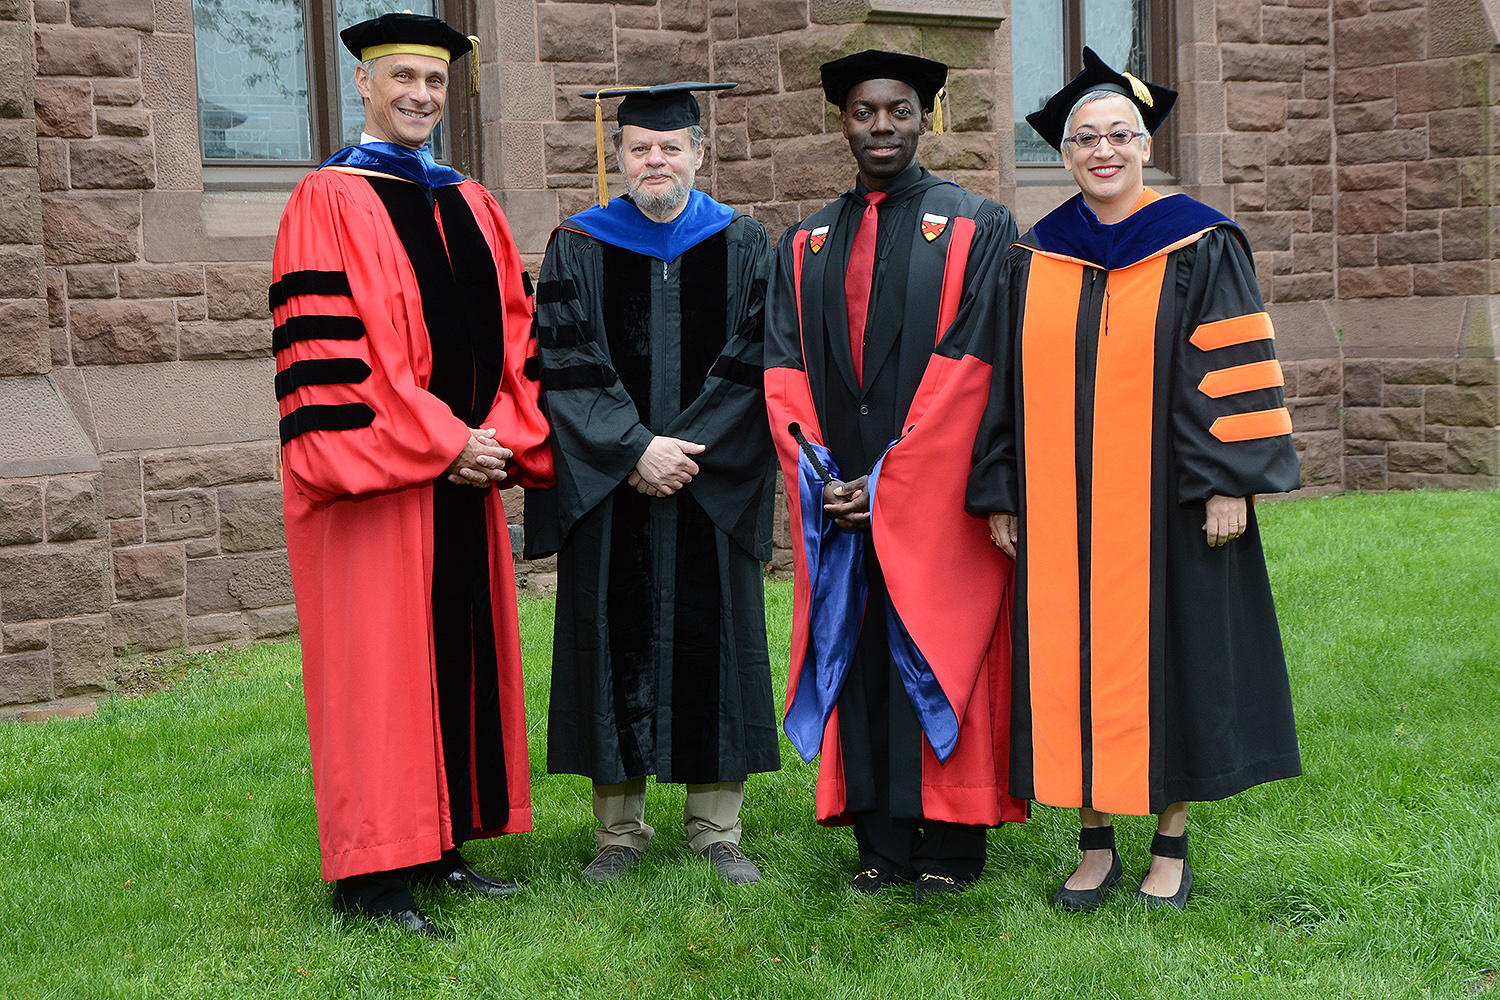 Wesleyan President Michael Roth honored James Lipton, professor of computer science; Demetrius Eudell, professor of history; and Sally Bachner, associate professor of English with Binswanger Prizes for Excellence in Teaching during the 184th Commencement Ceremonyon May 22. (Photo by John Van Vlack)